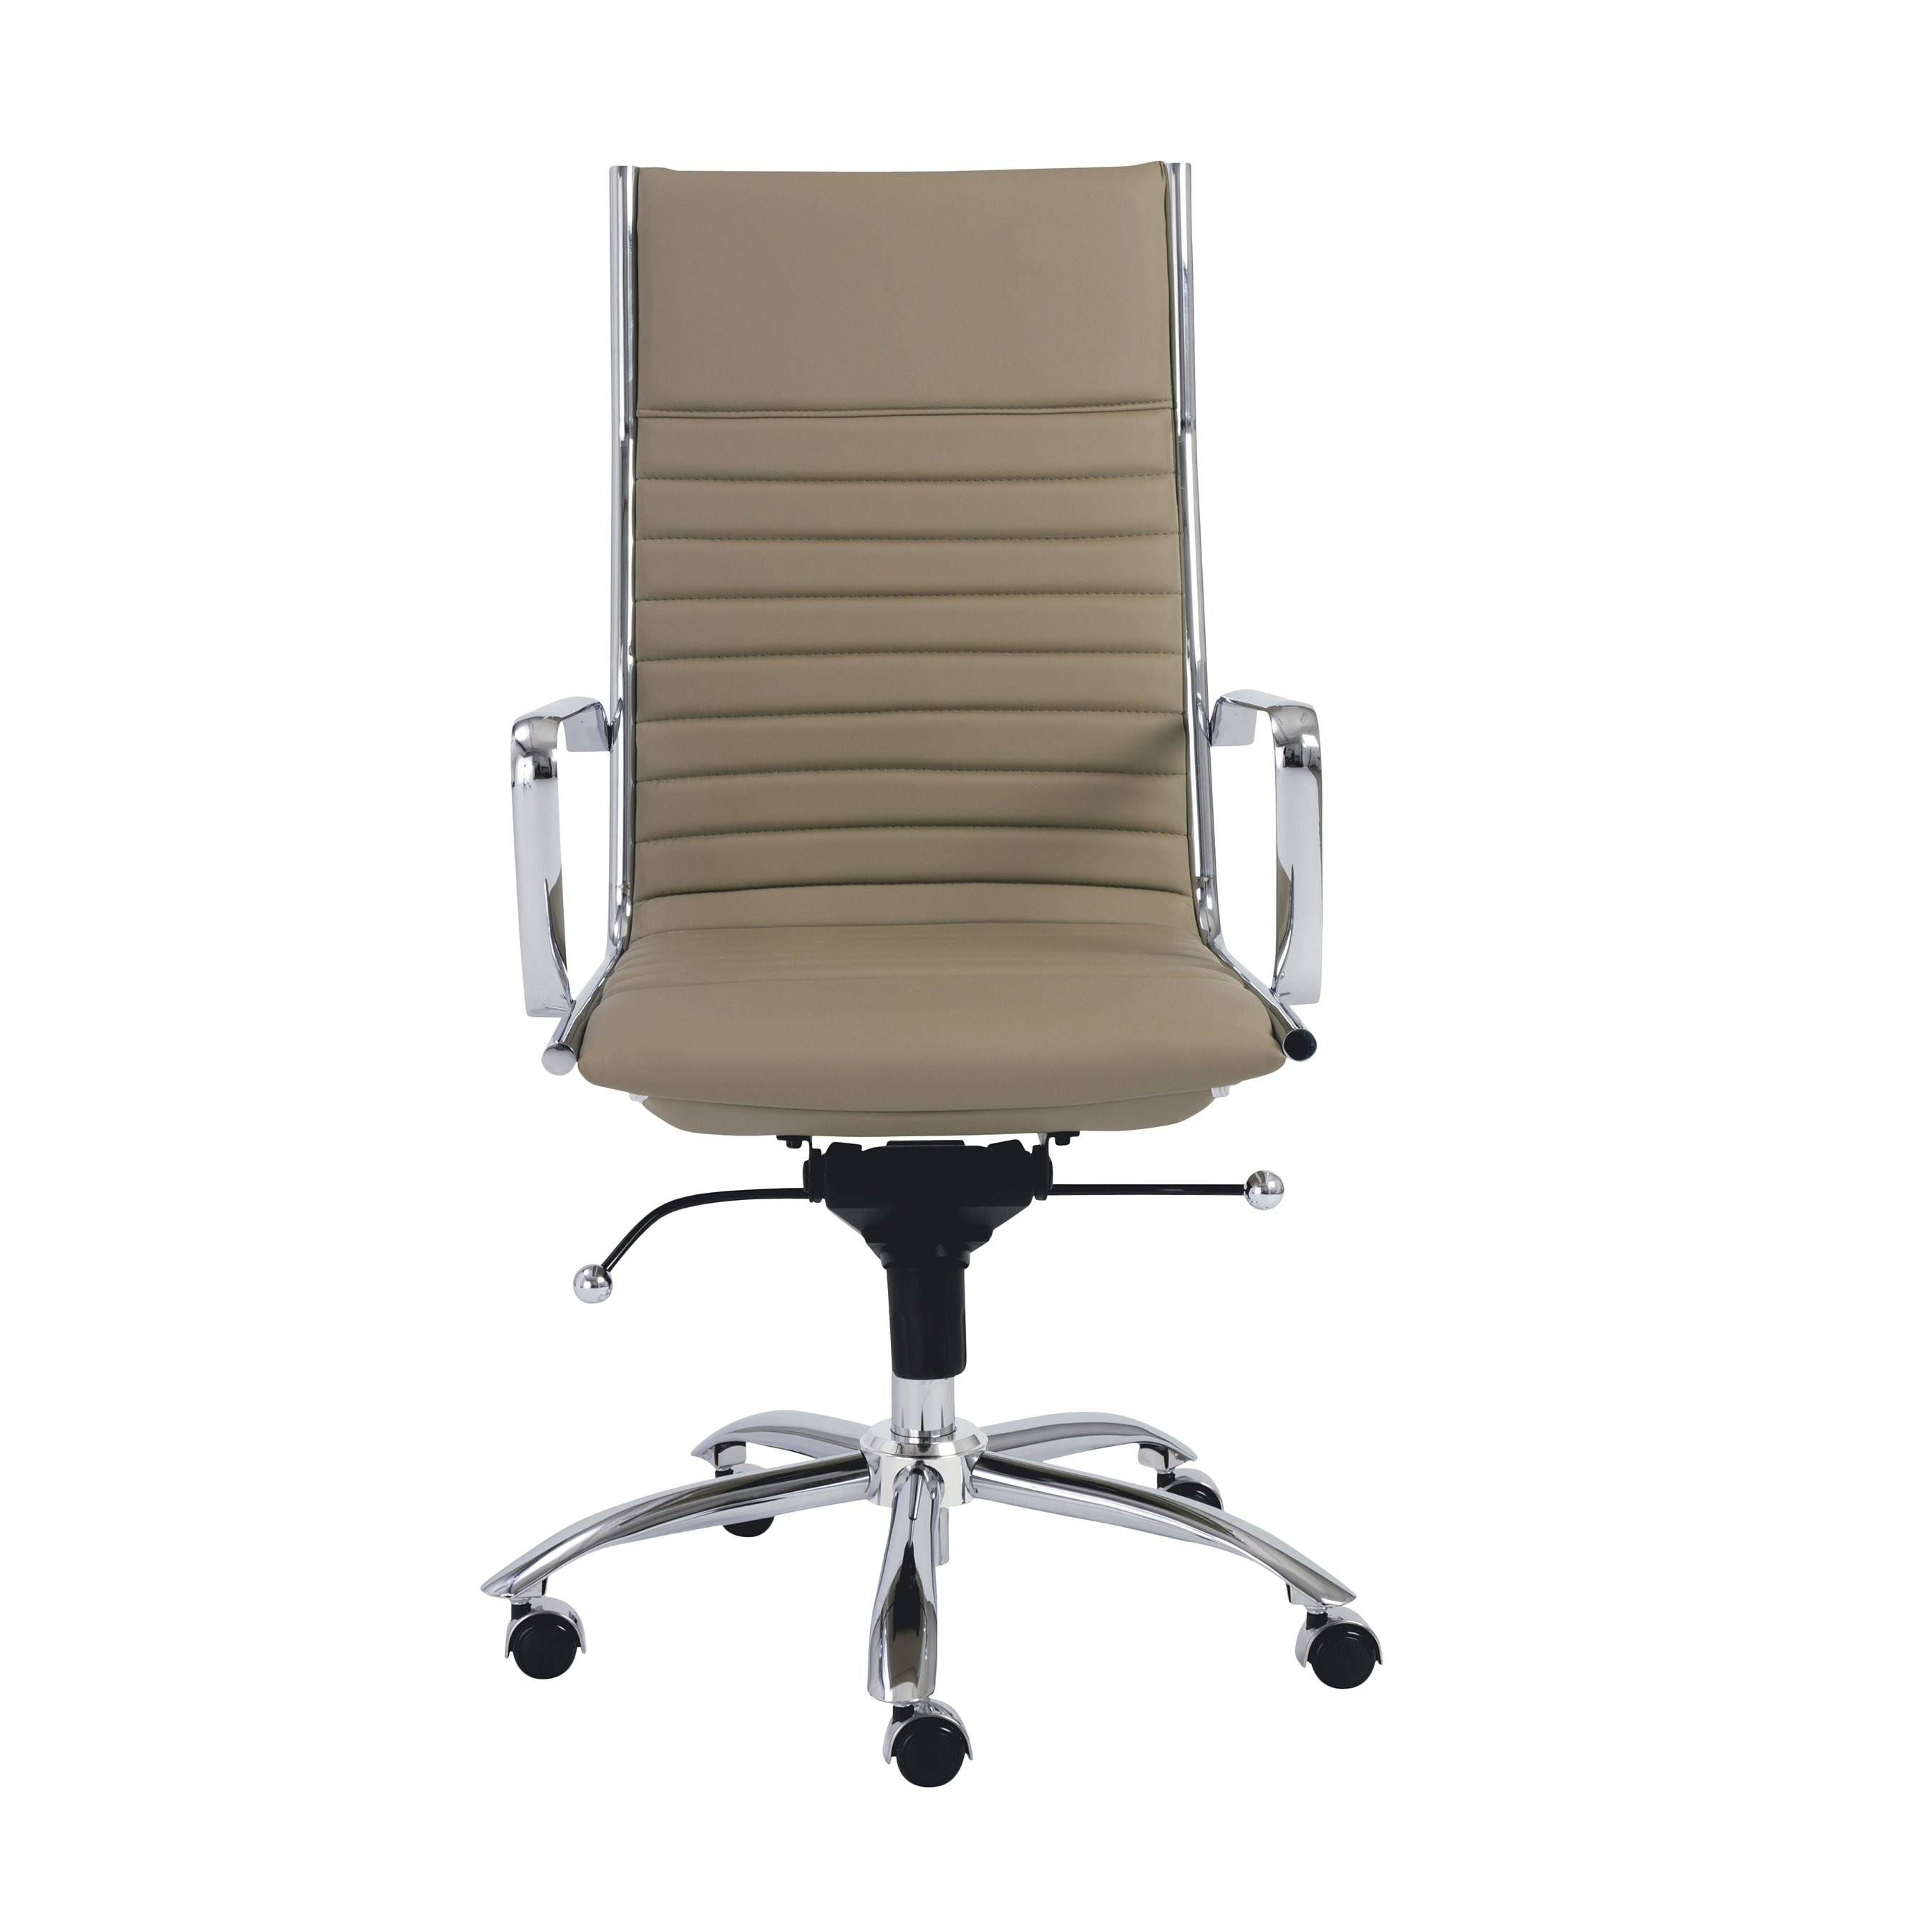 Best ideas about High Office Chair . Save or Pin Eurostyle Dirk High Back fice Chair & Reviews Now.